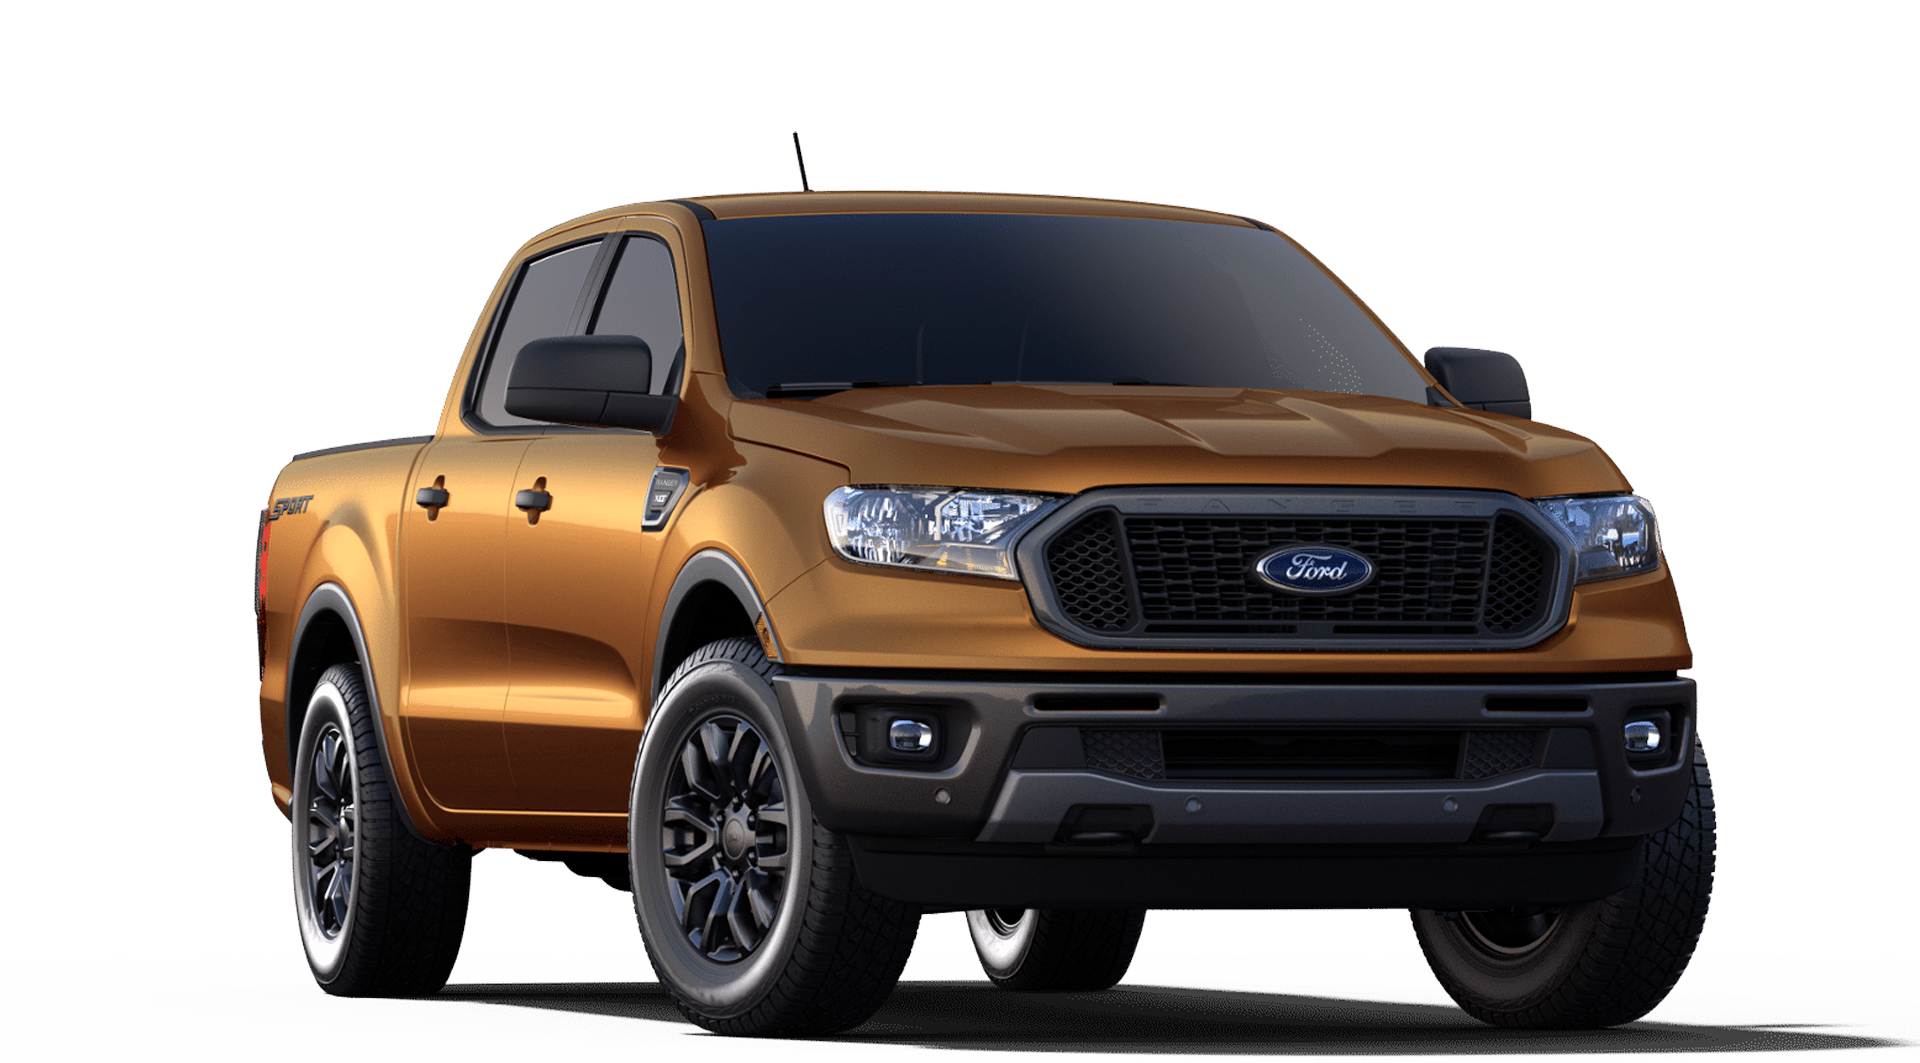 2019 Ford Ranger XLT Crew Cab 4X4 shown